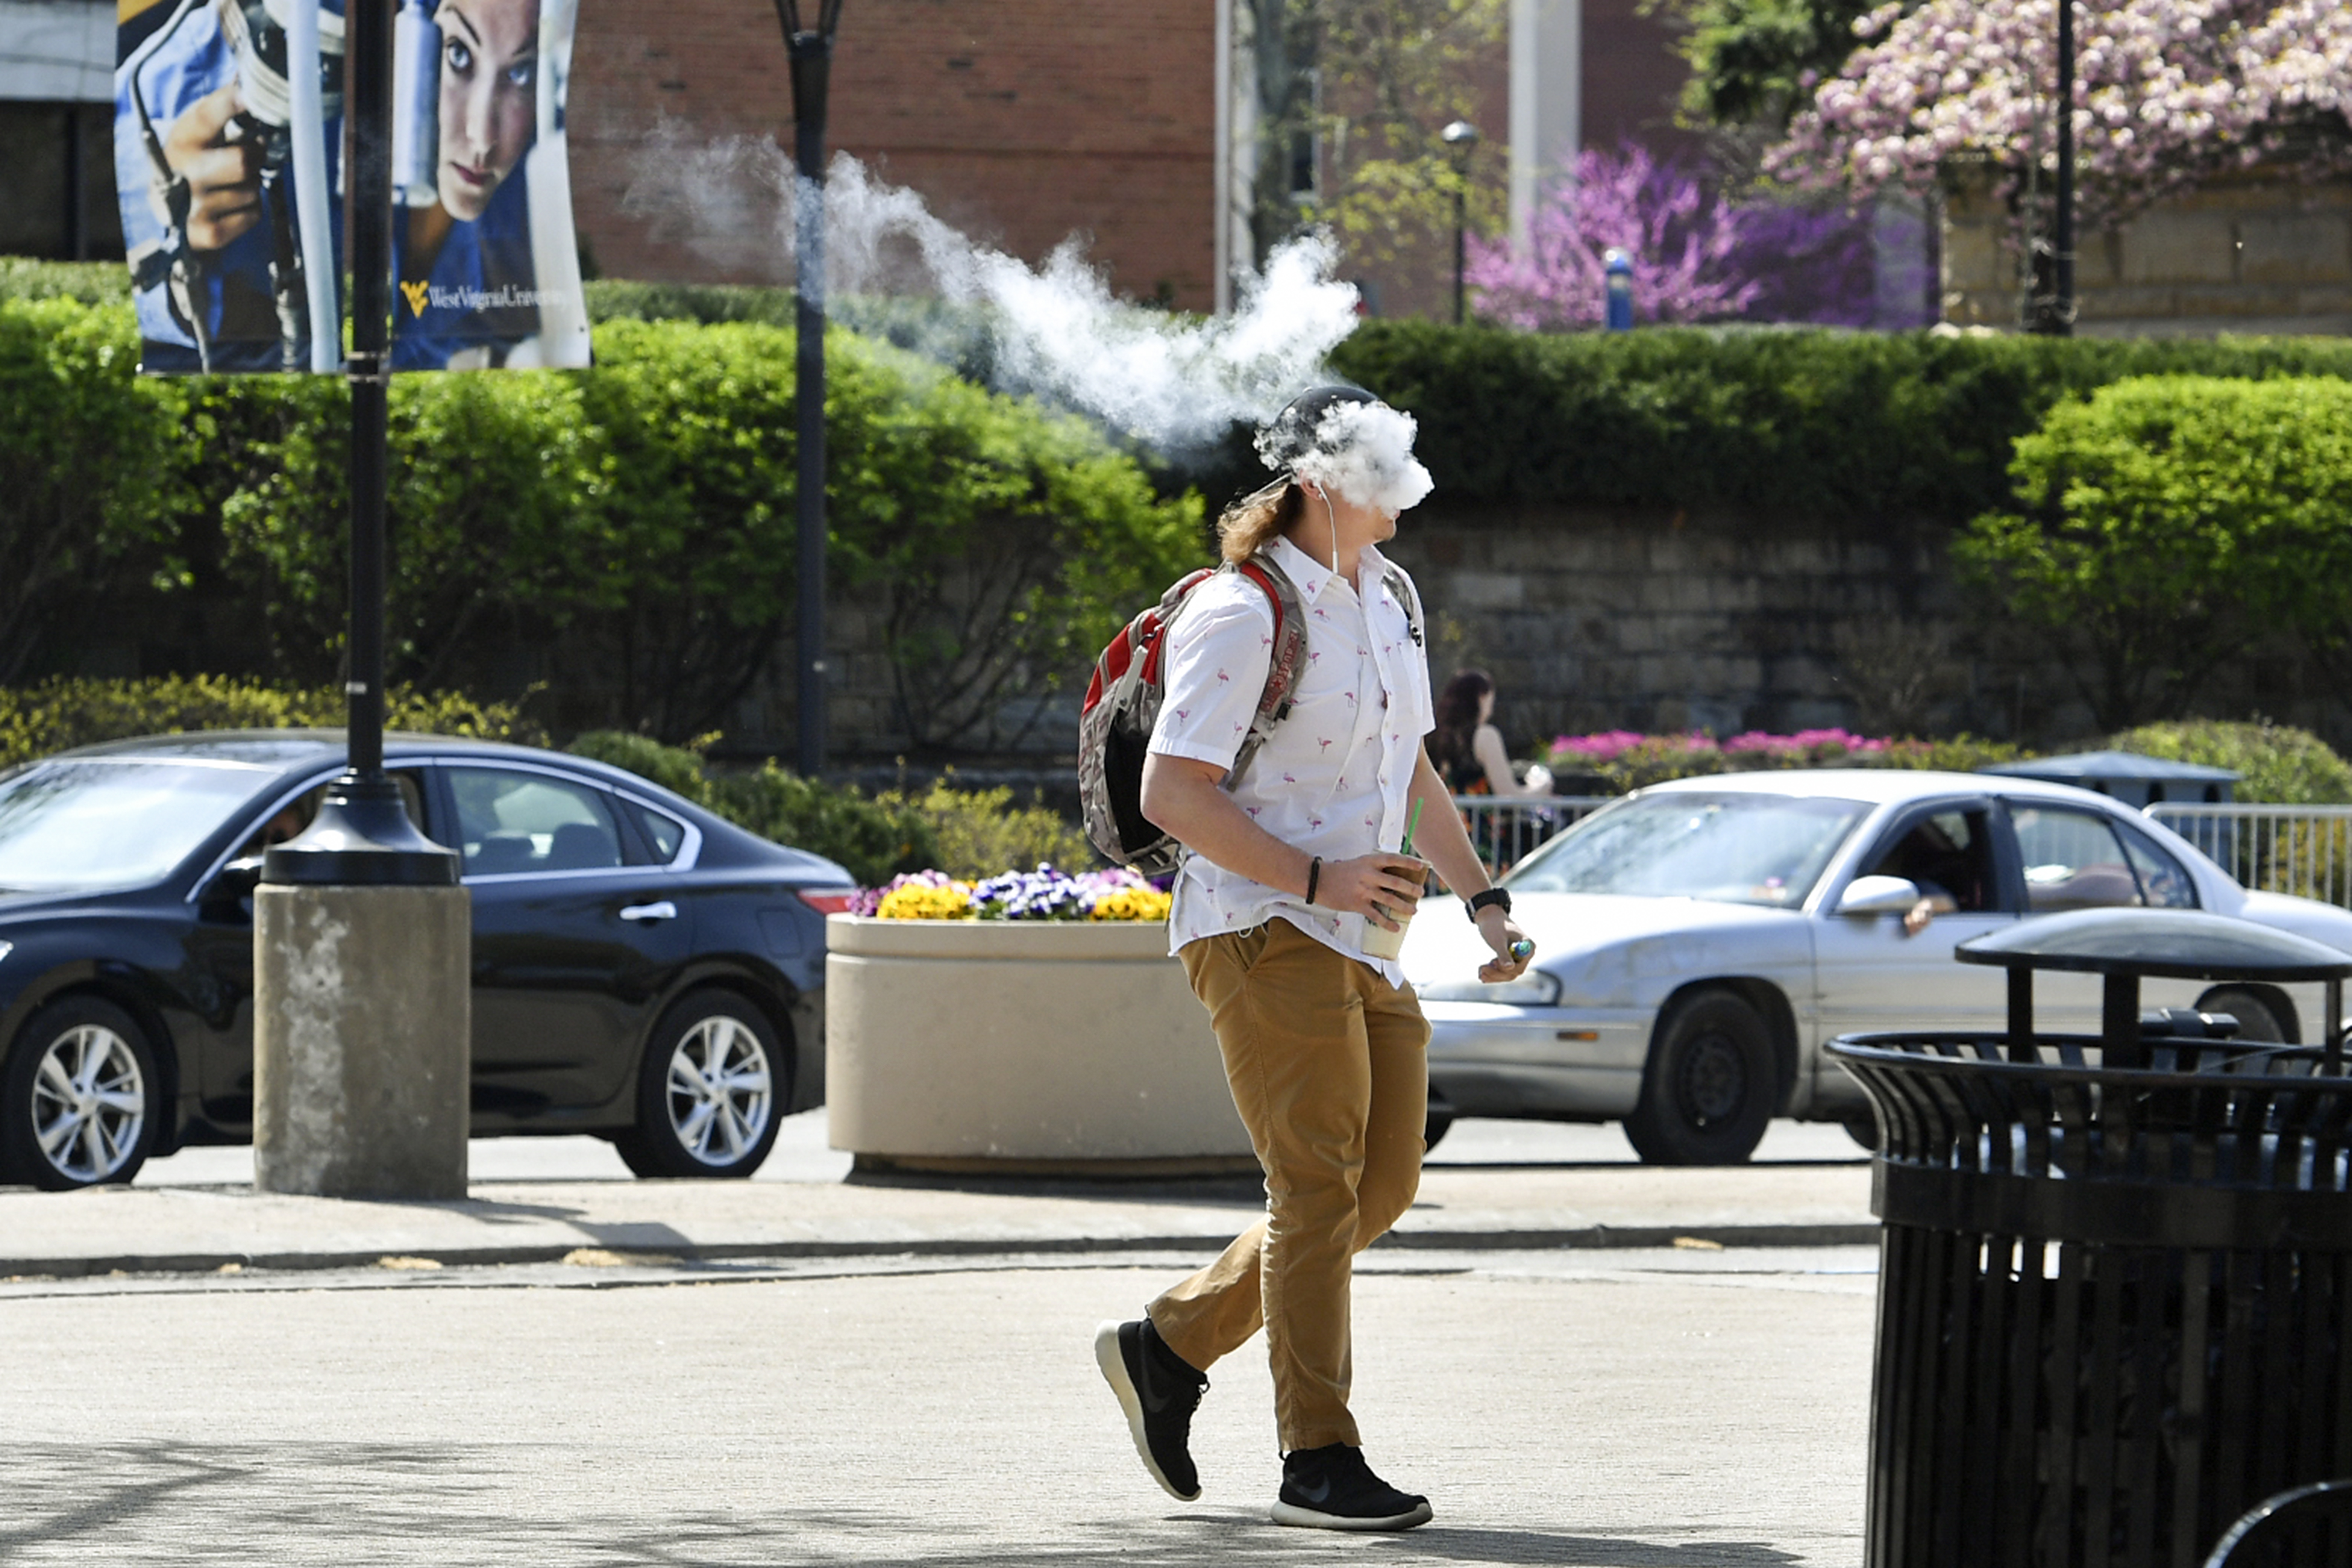 man vaping on college campus